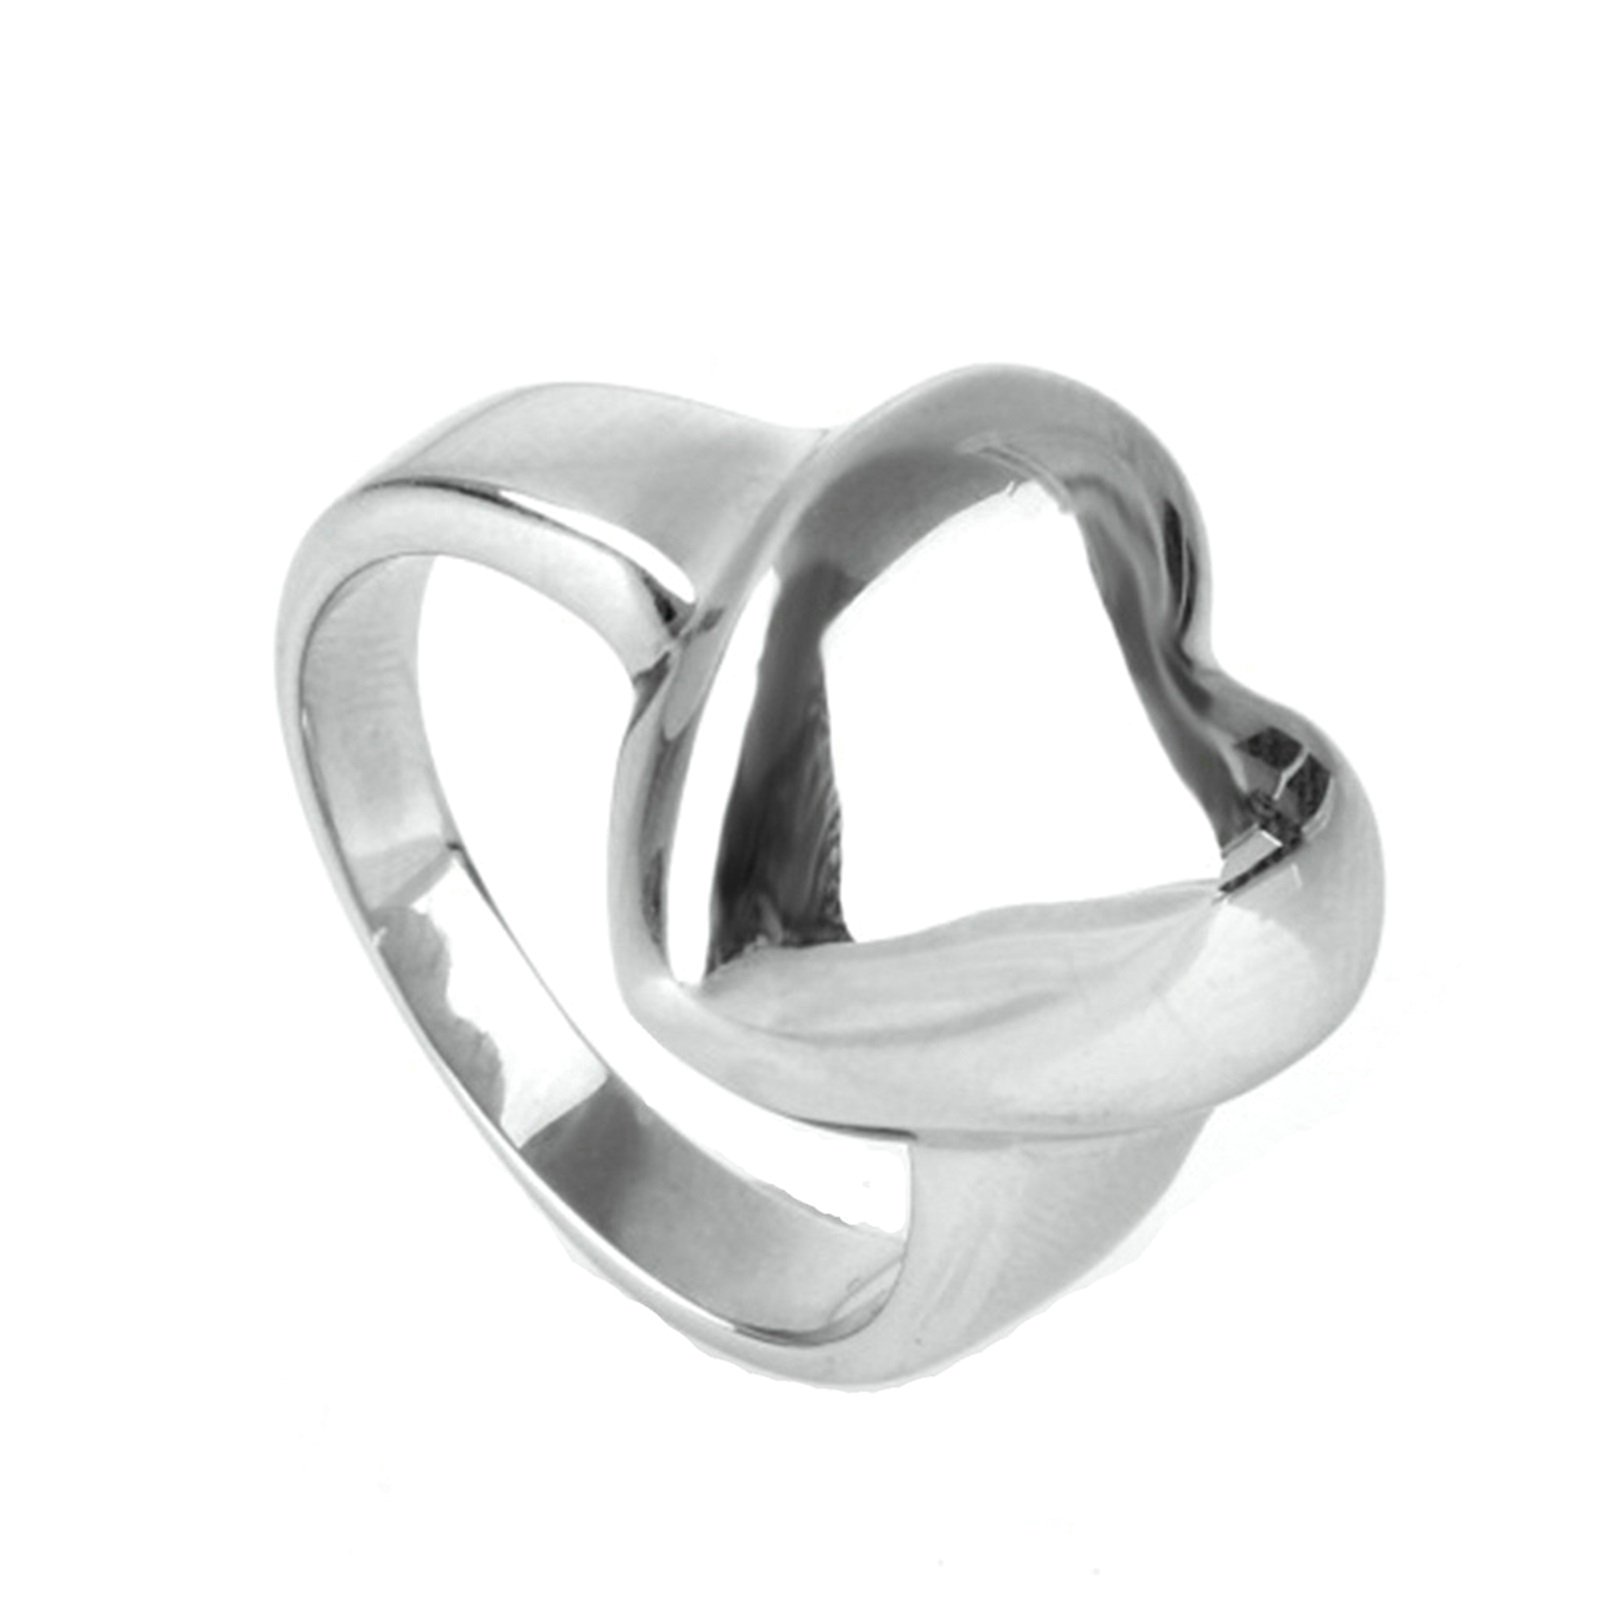 MoAndy Men Stainless Steel Vintage Retro Silver Heart Ring 6MM Size 12